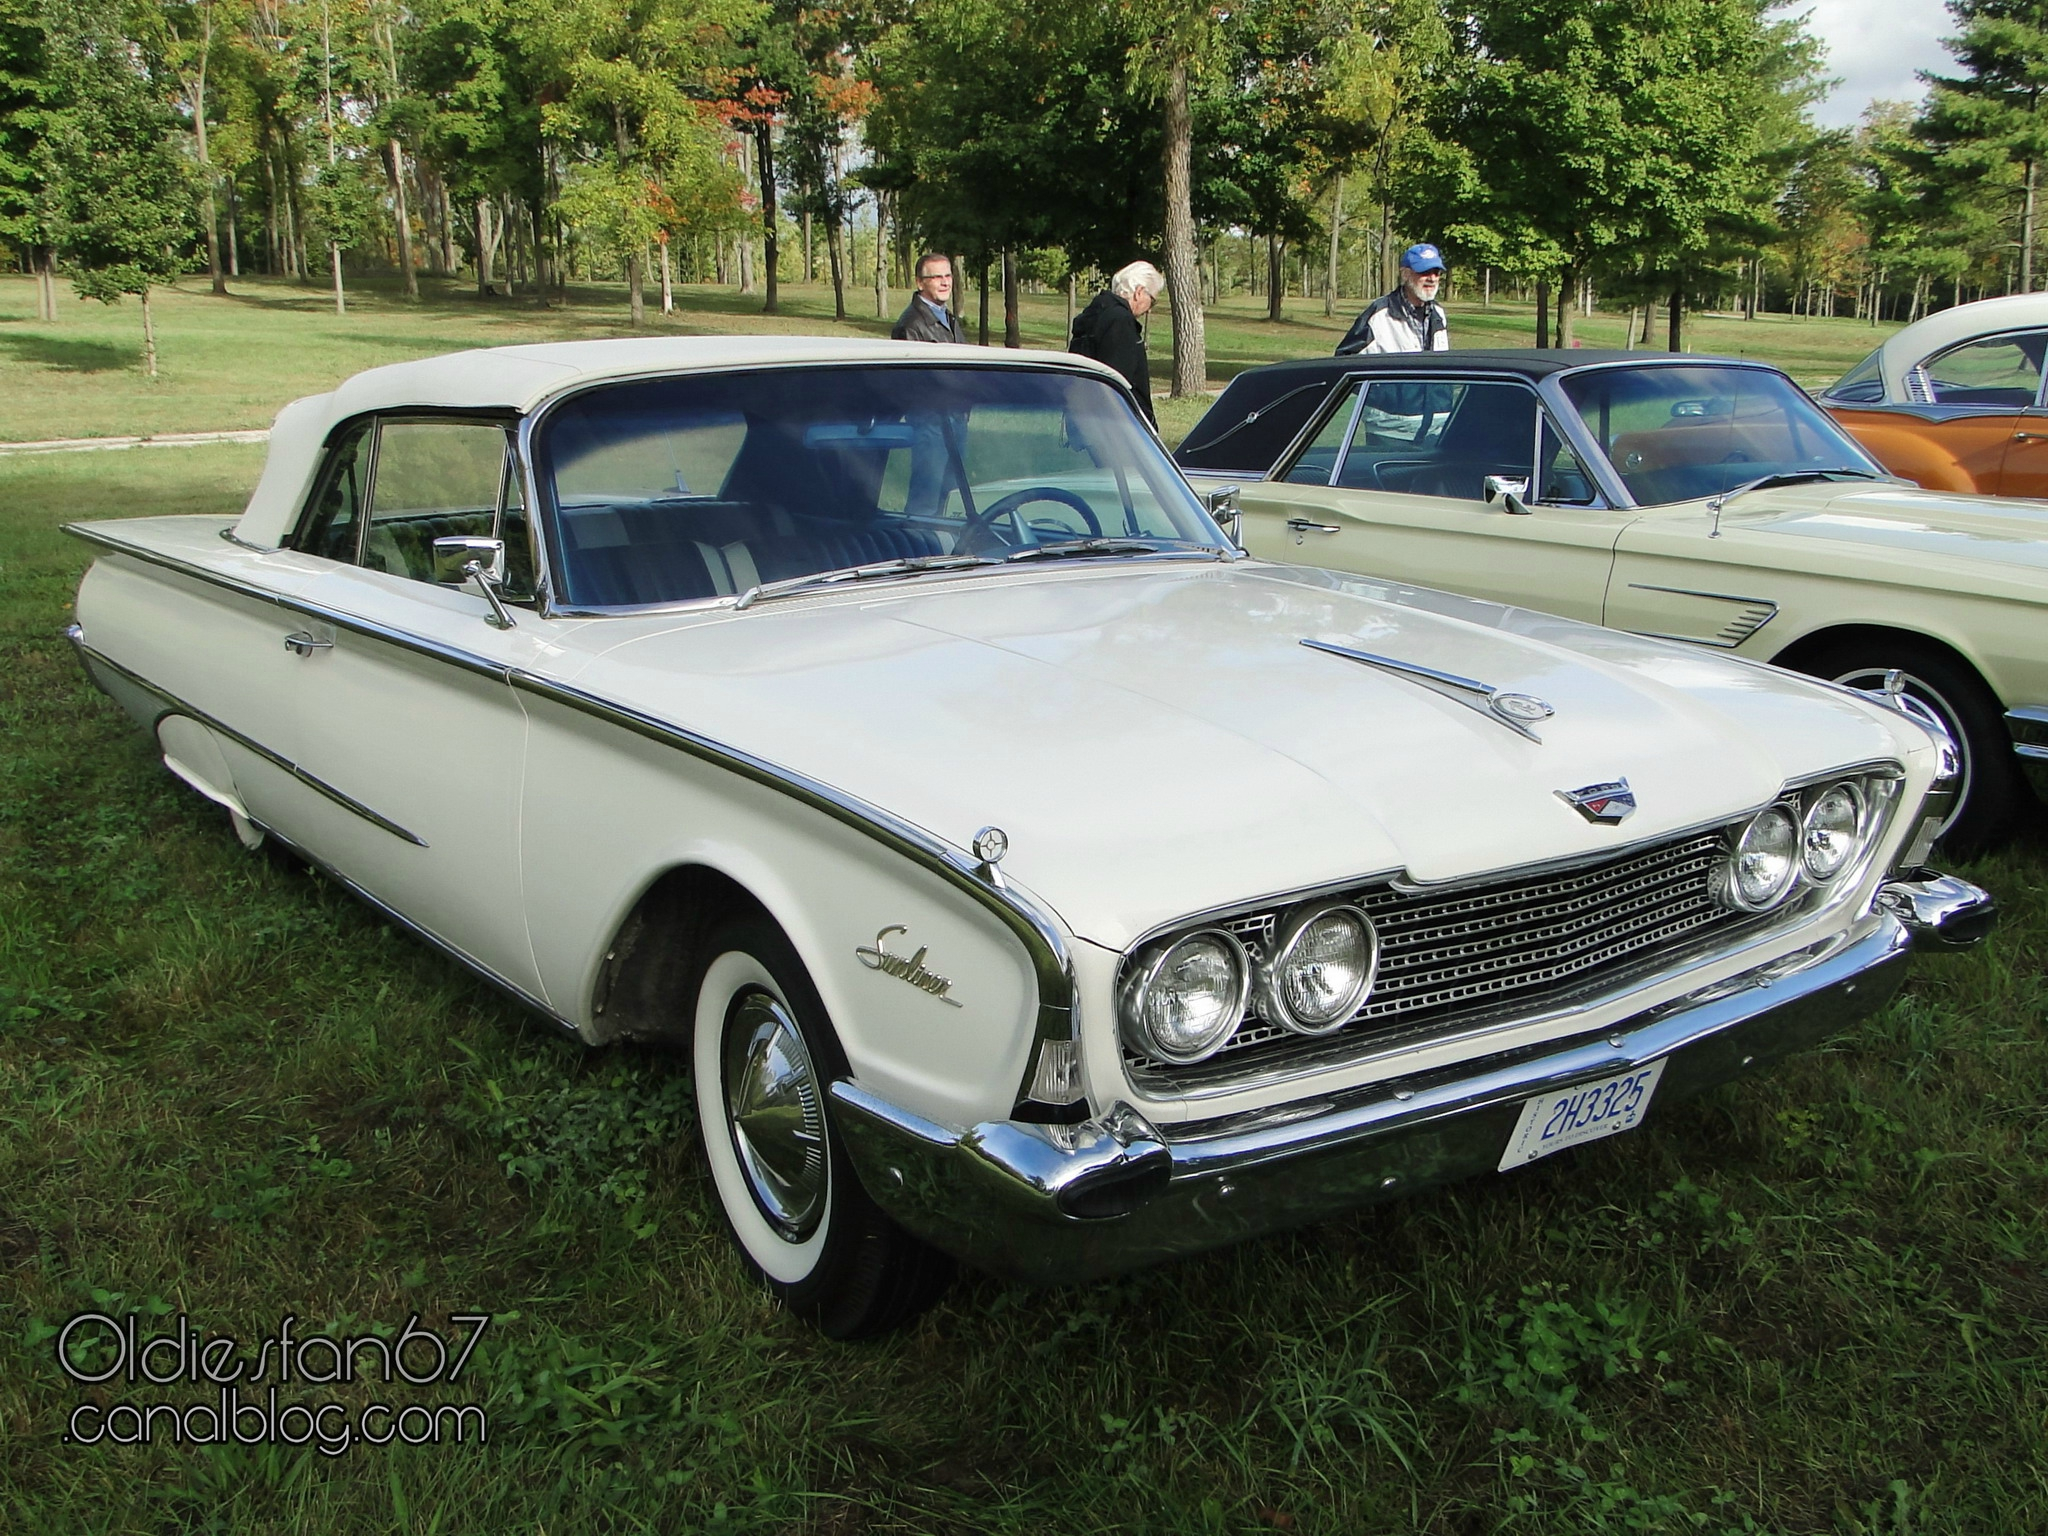 ford galaxie sunliner convertible 1960 oldiesfan67 mon. Black Bedroom Furniture Sets. Home Design Ideas